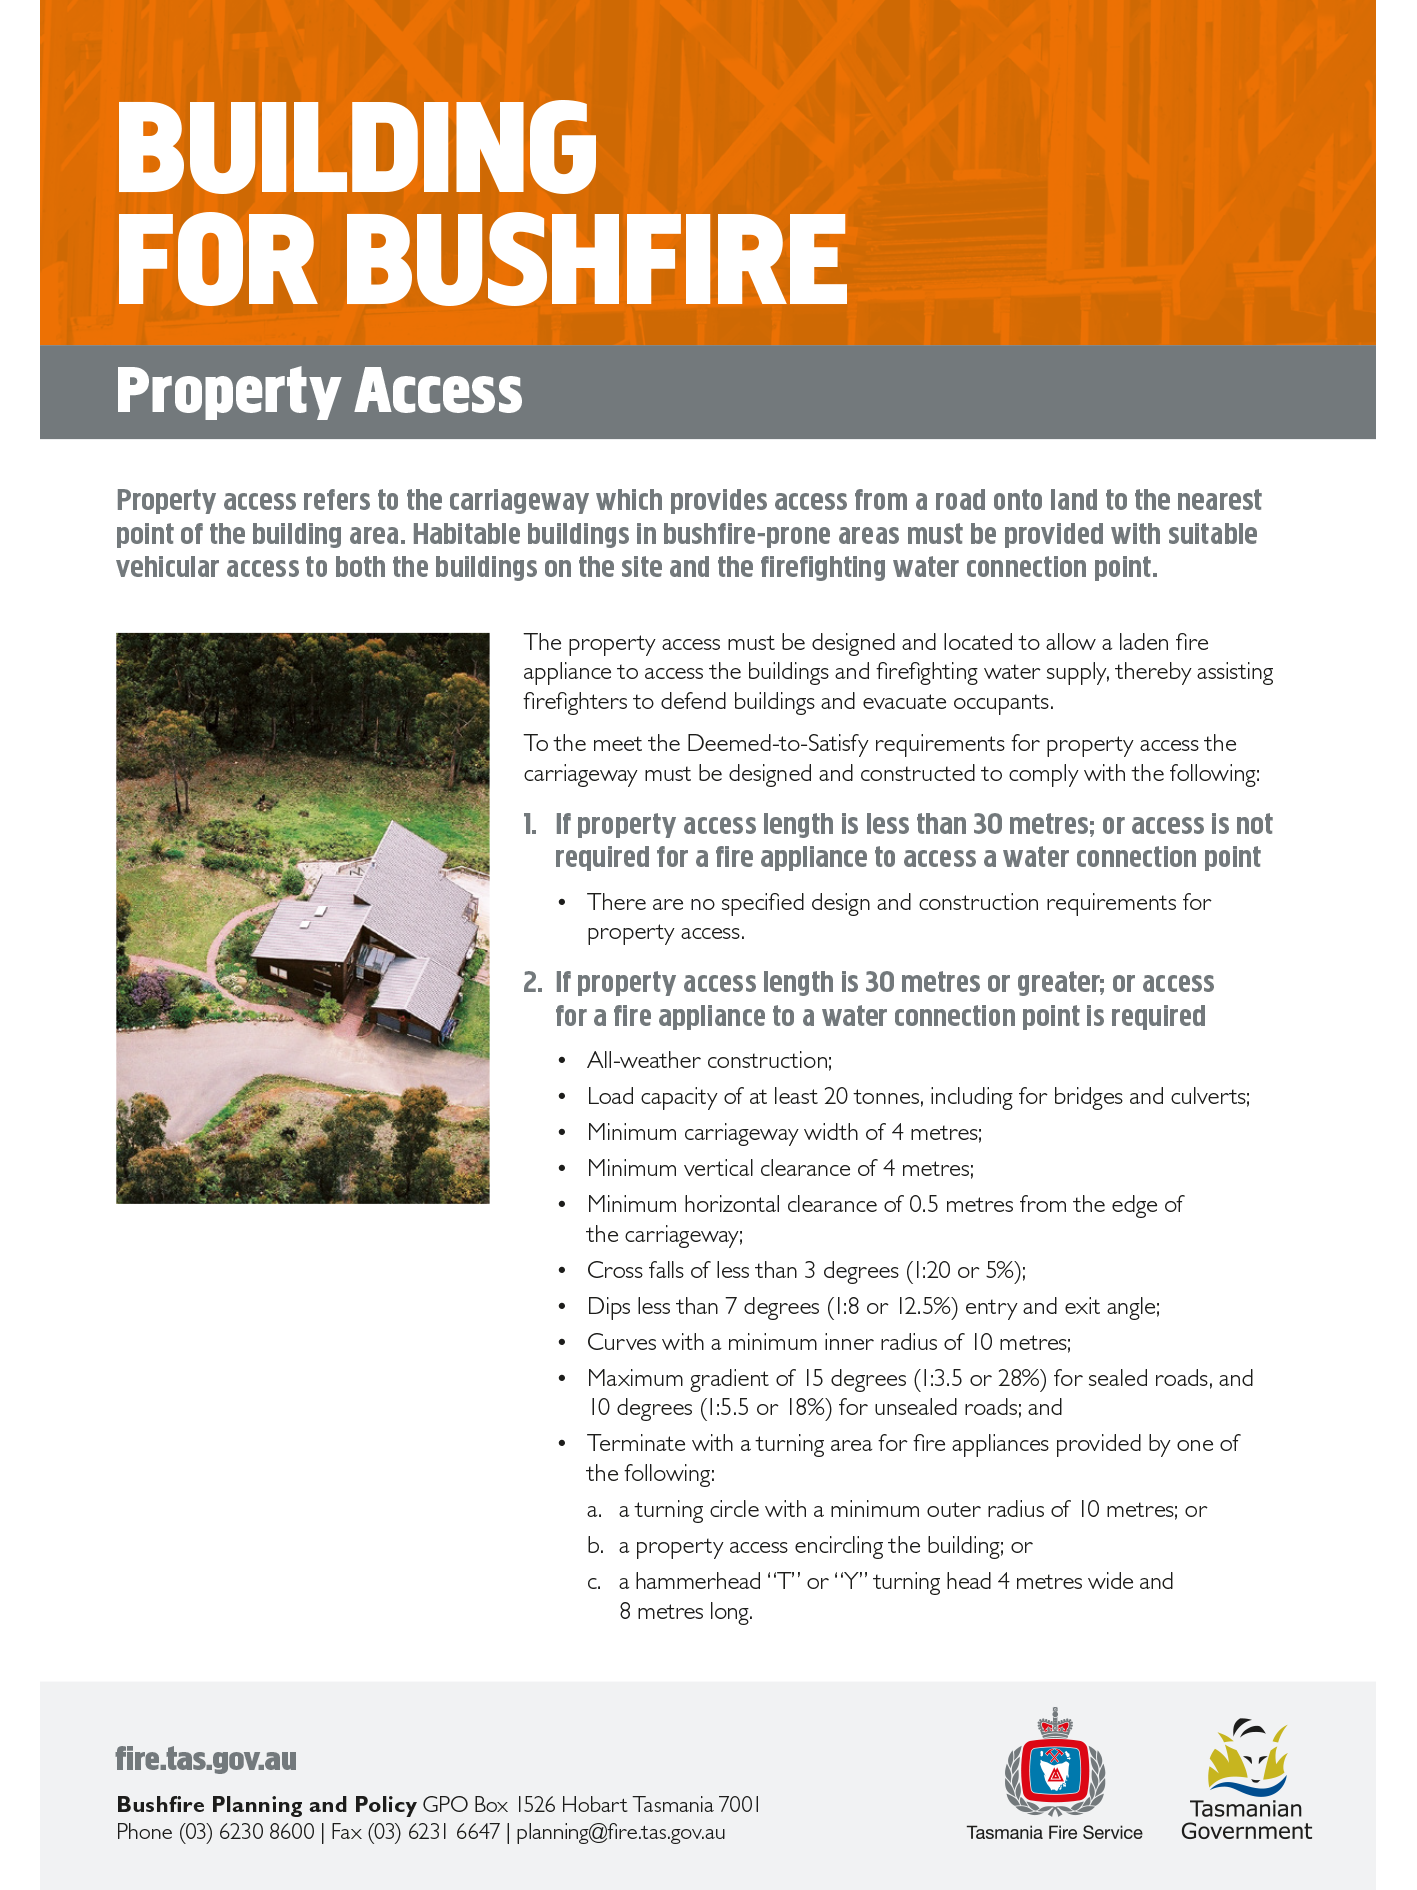 Building for Bushfire Property Access